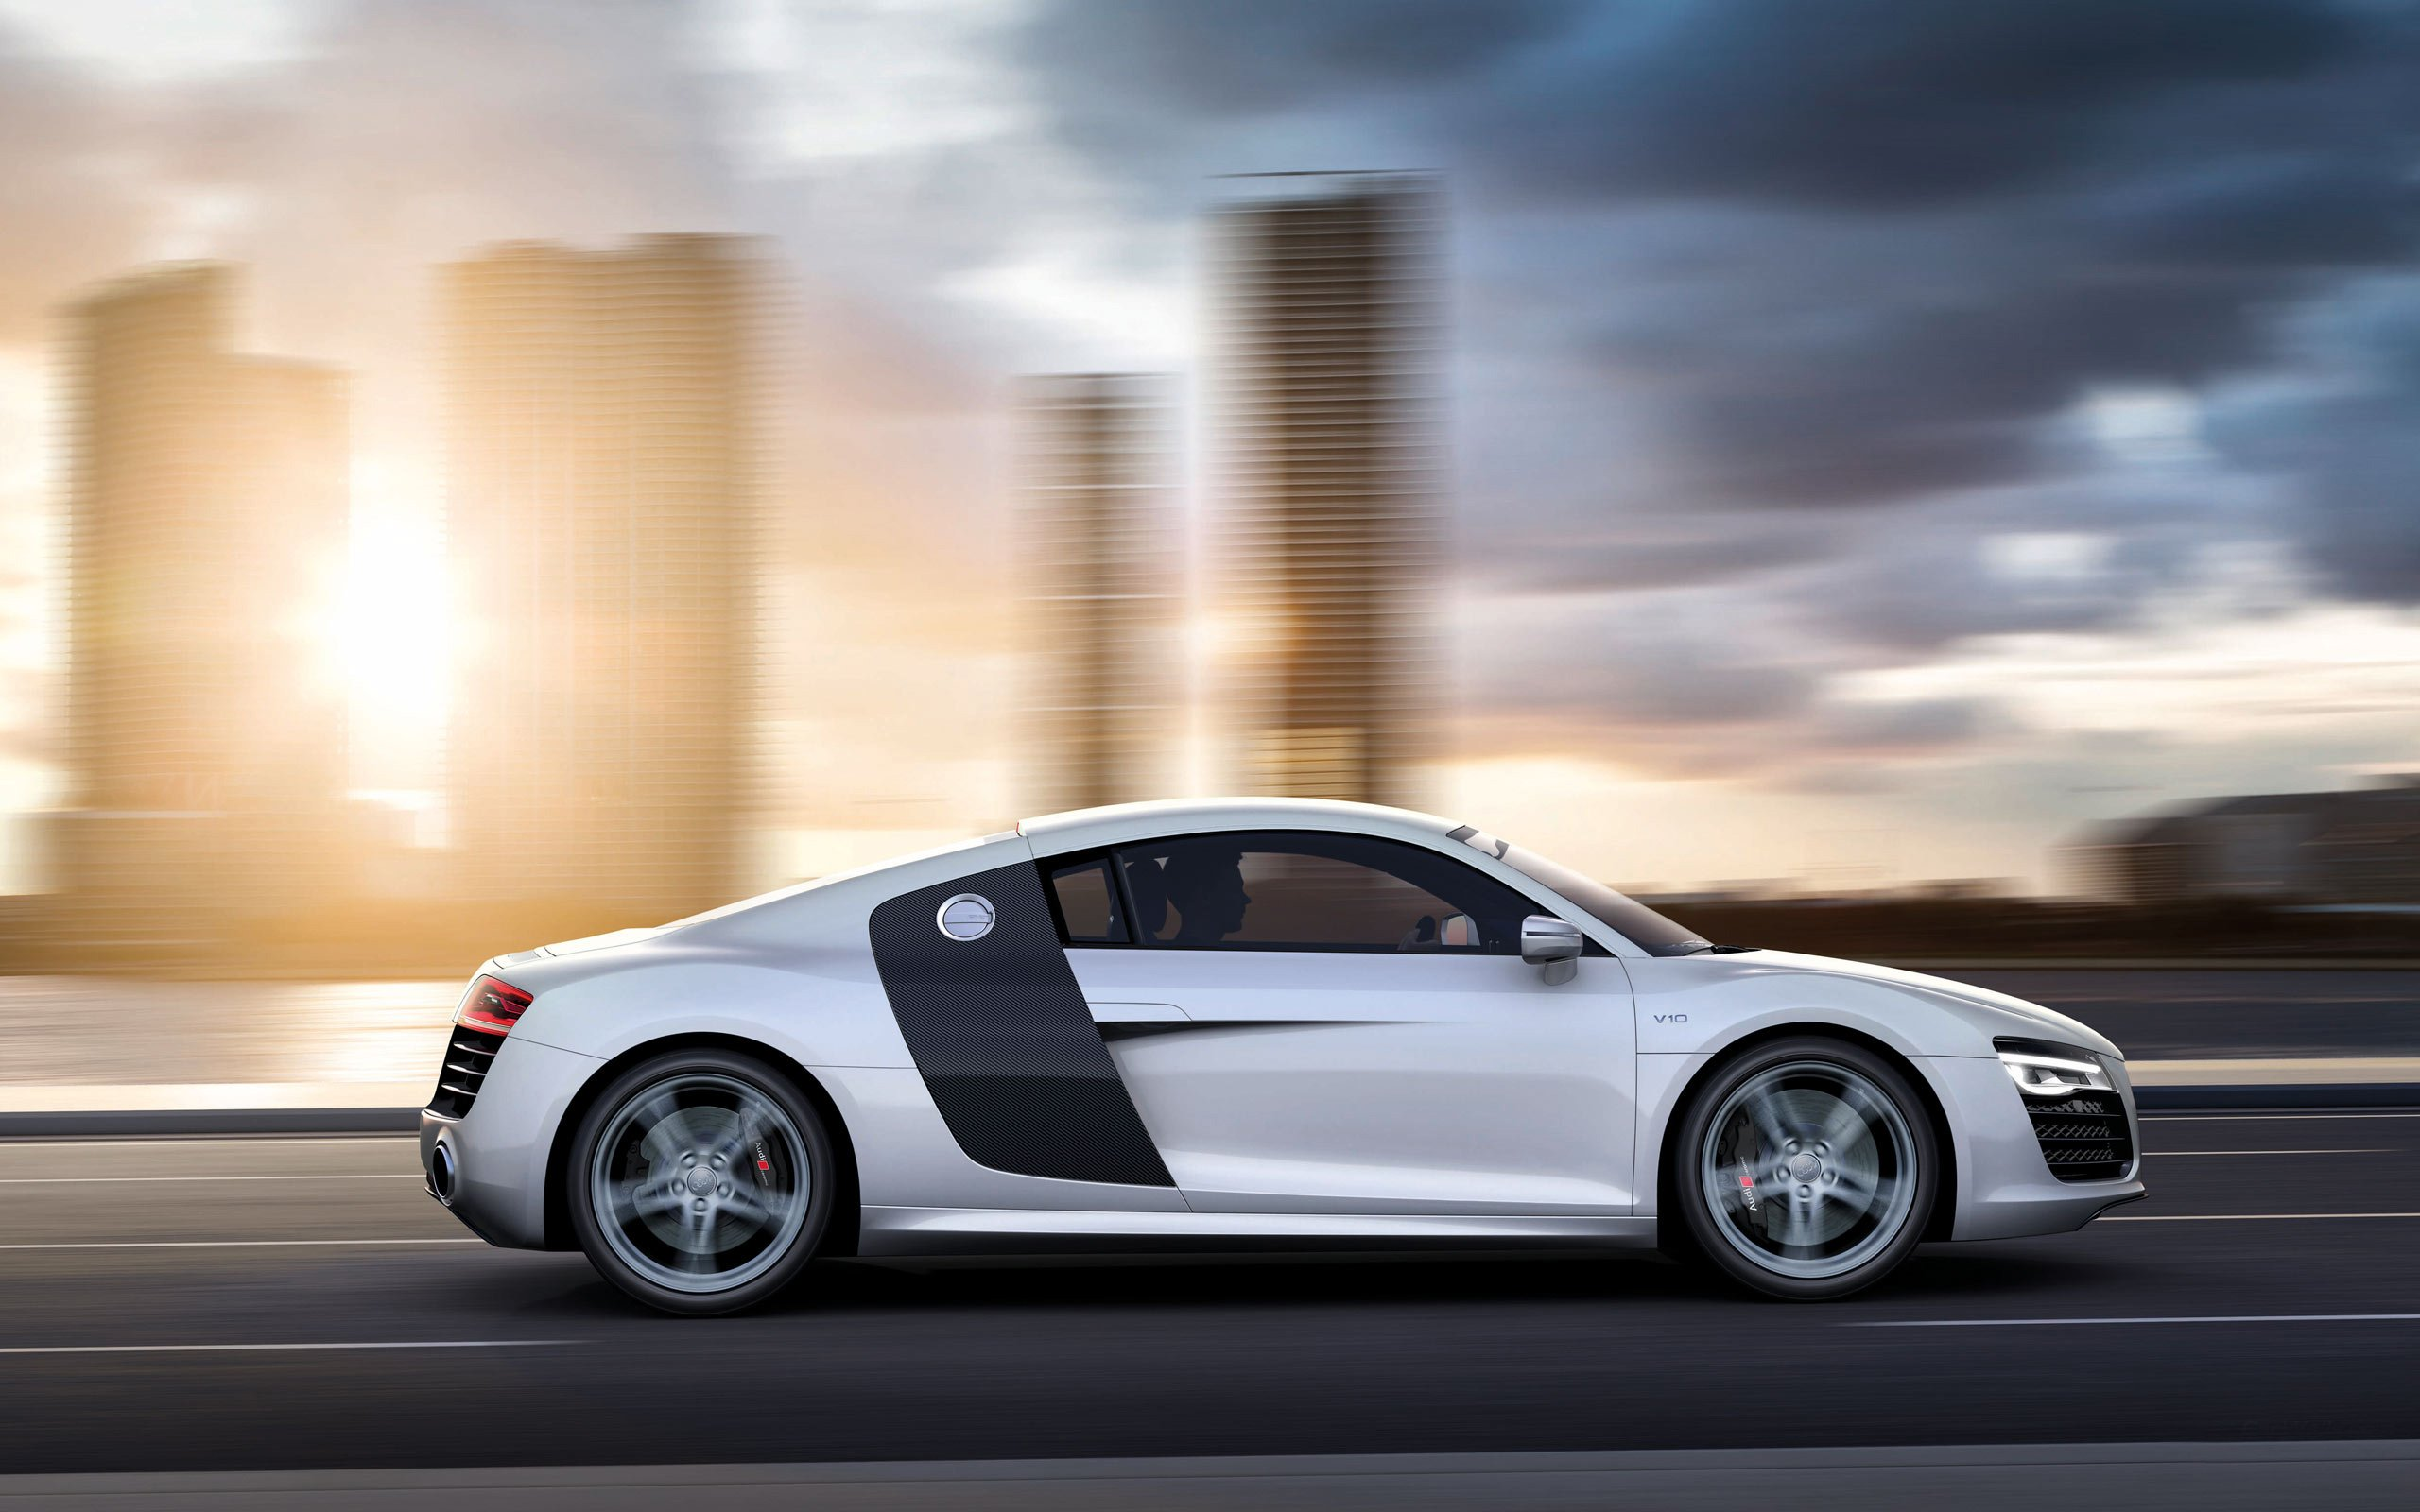 audi r8 wallpaper background 49366 2560x1600px